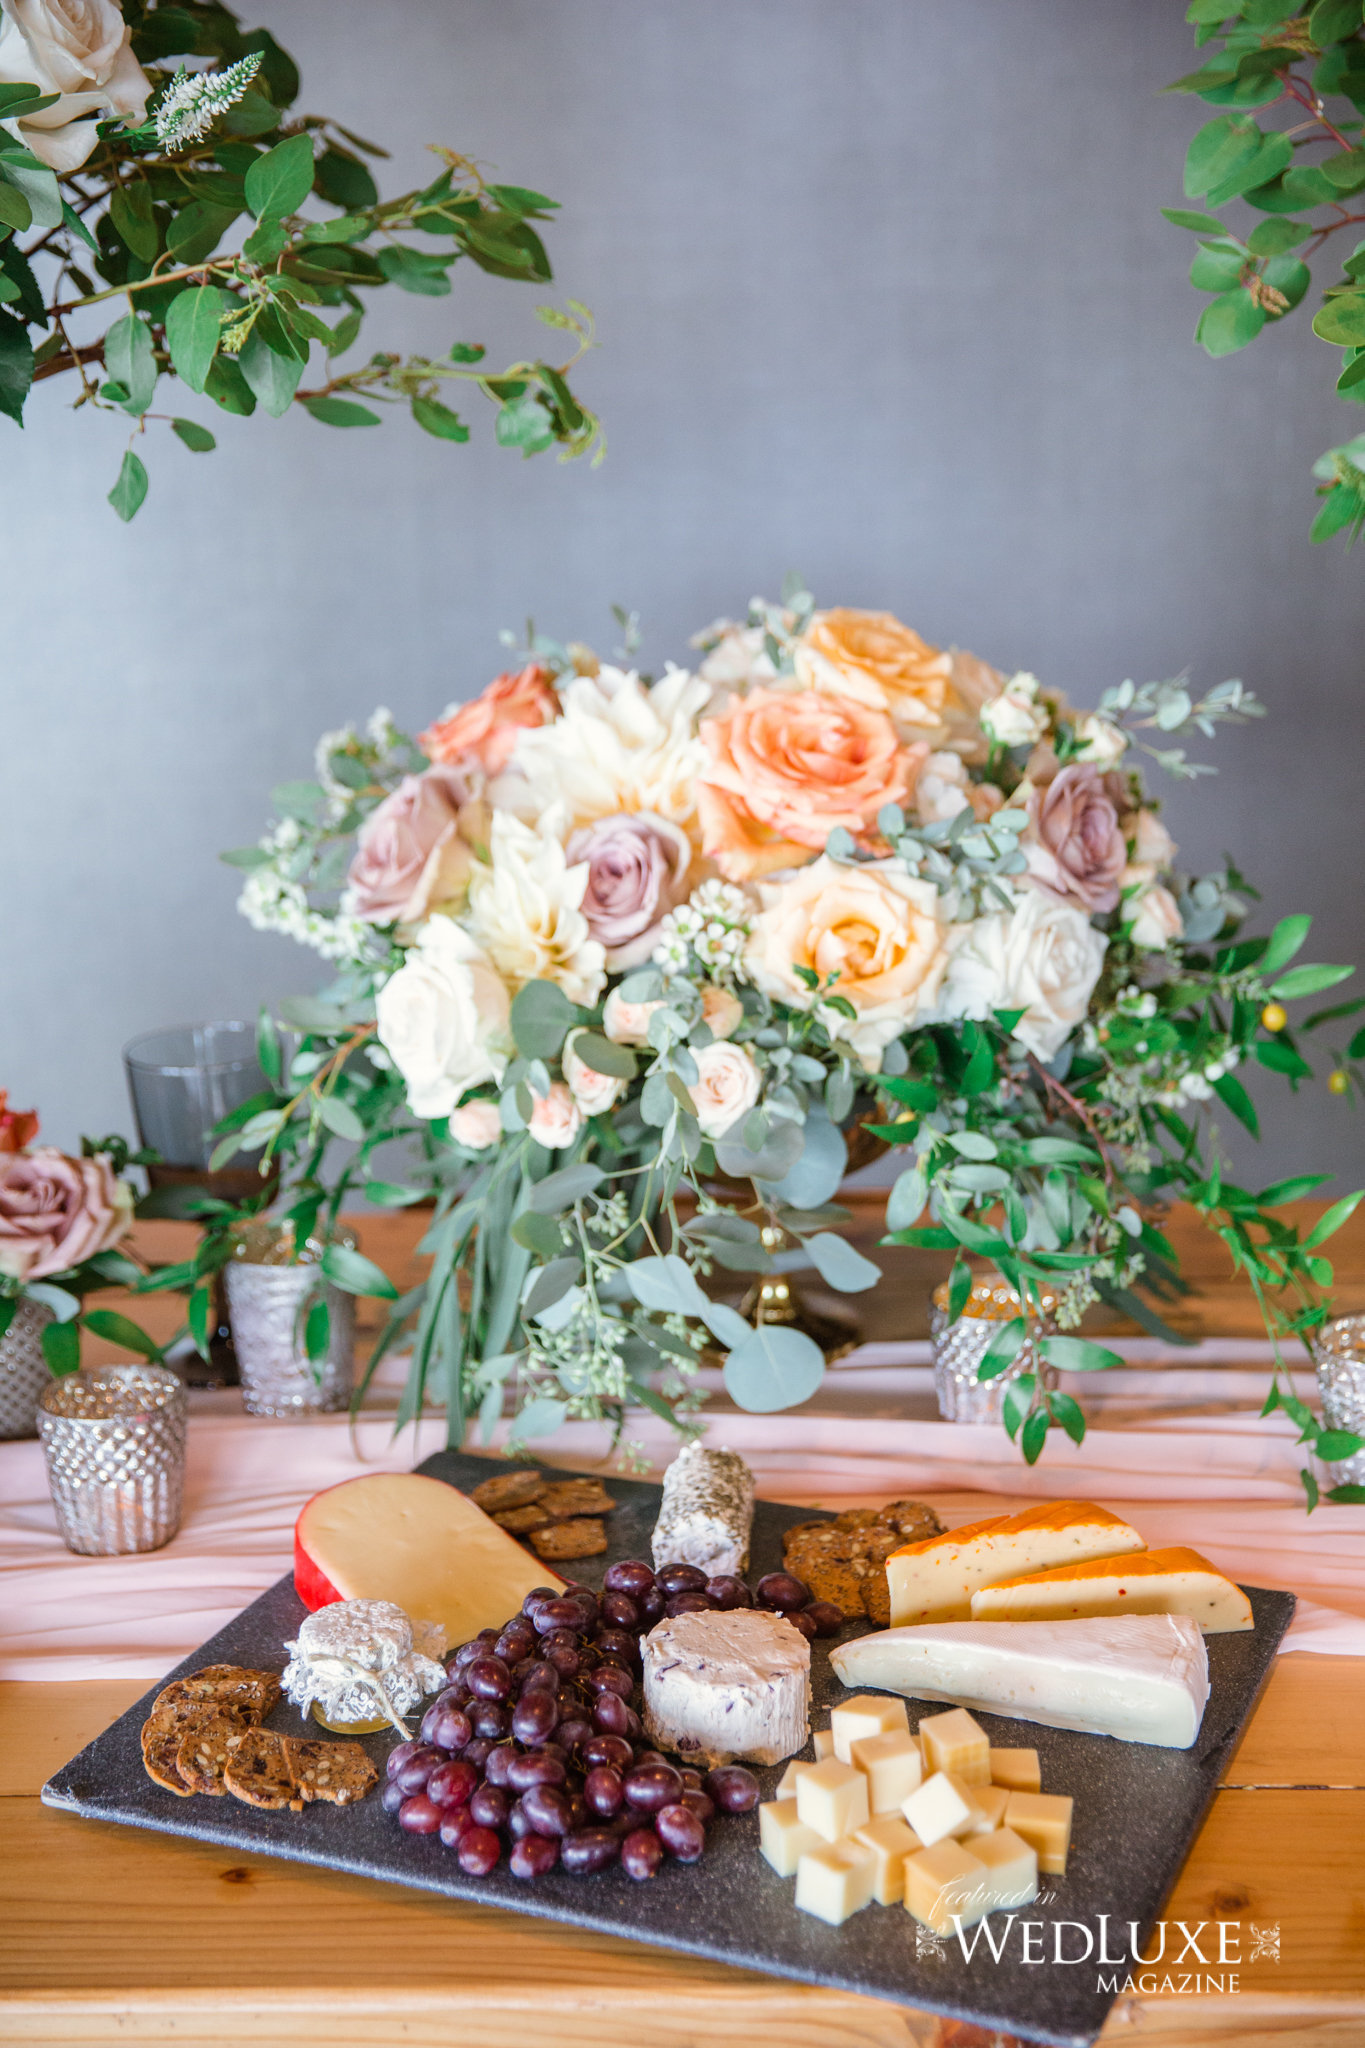 Styled Wedluxe Magazine Rustic Retreat charcuterie  board